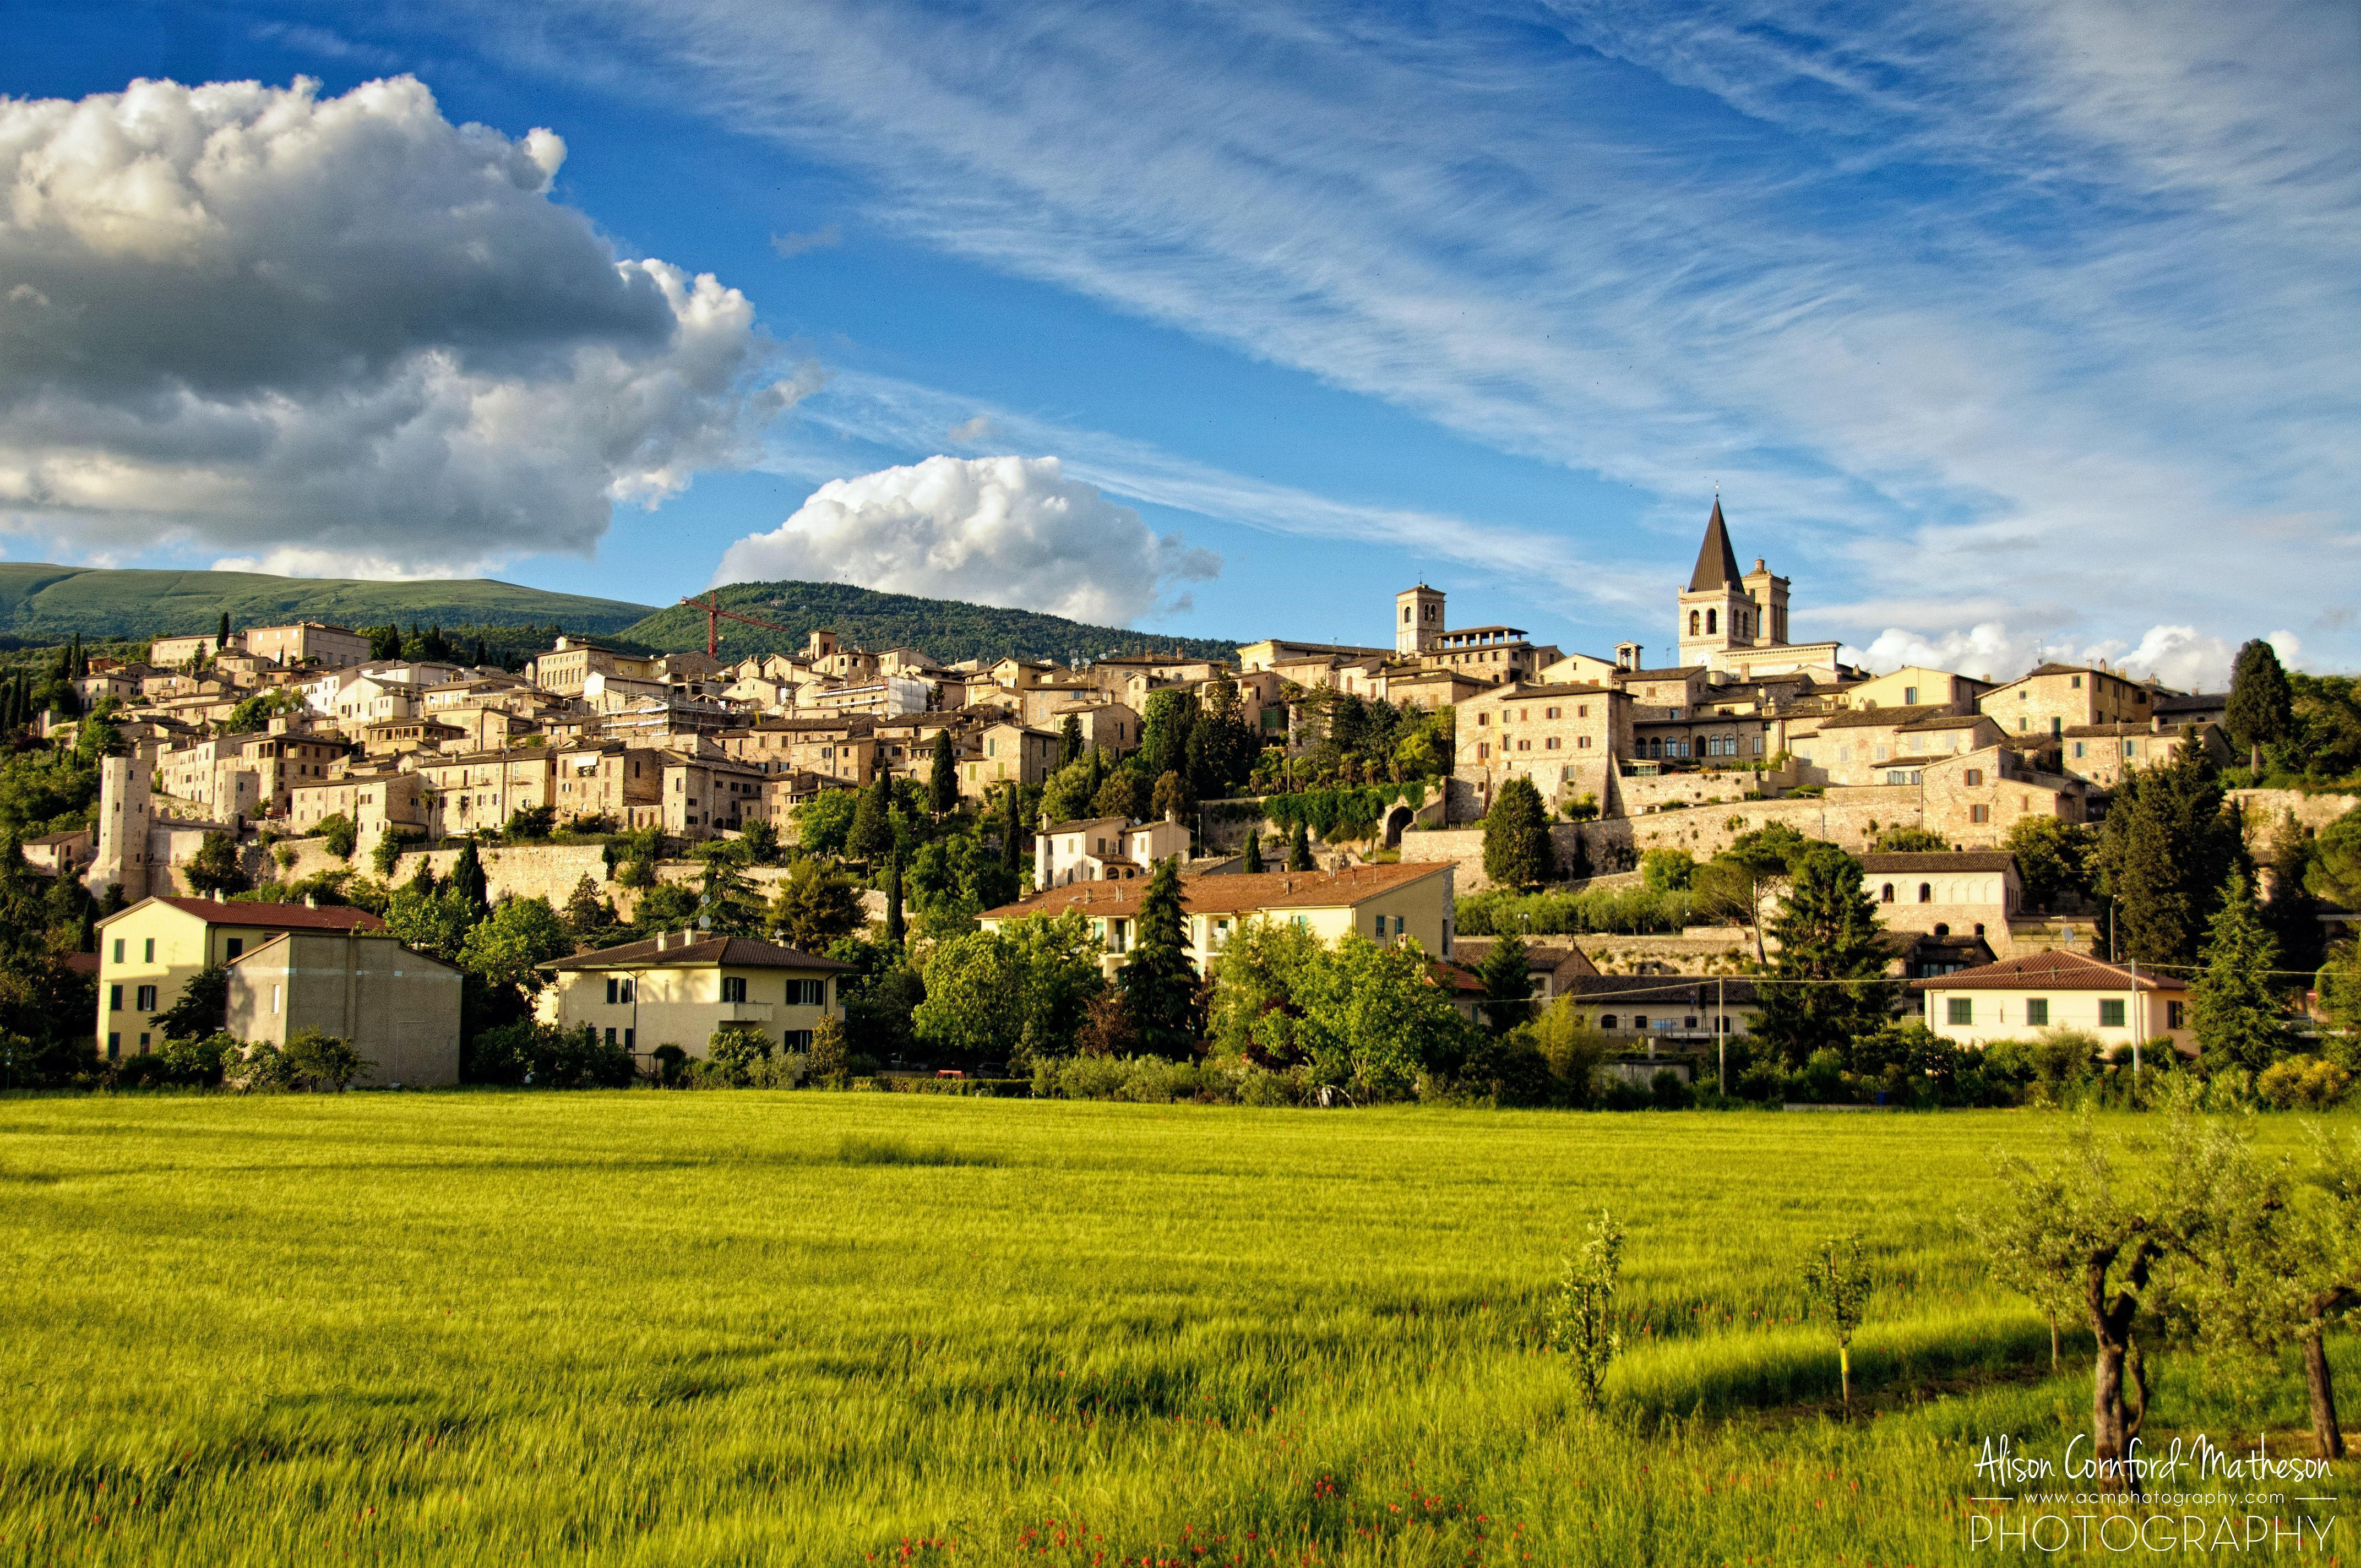 It doesn't get more Italian than this - stunning Spello in Umbria